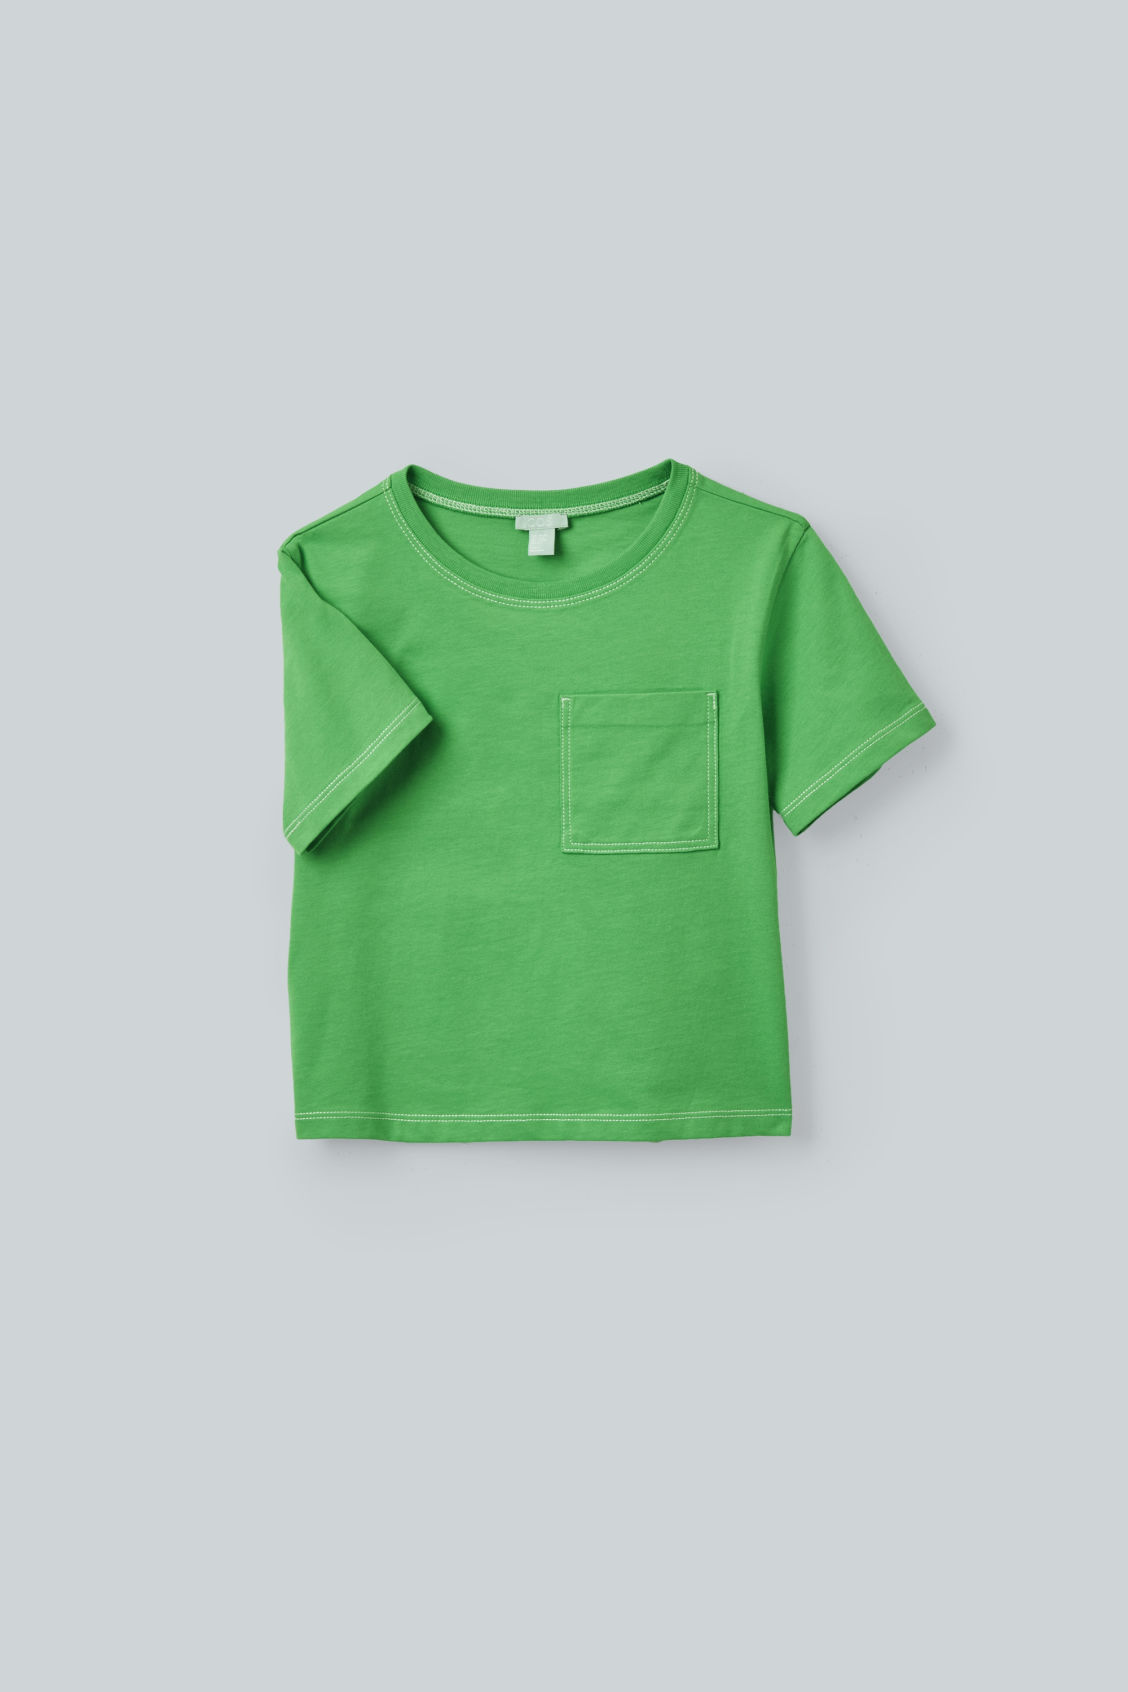 Detailed image of Cos topstitched organic-cotton t-shirt in green